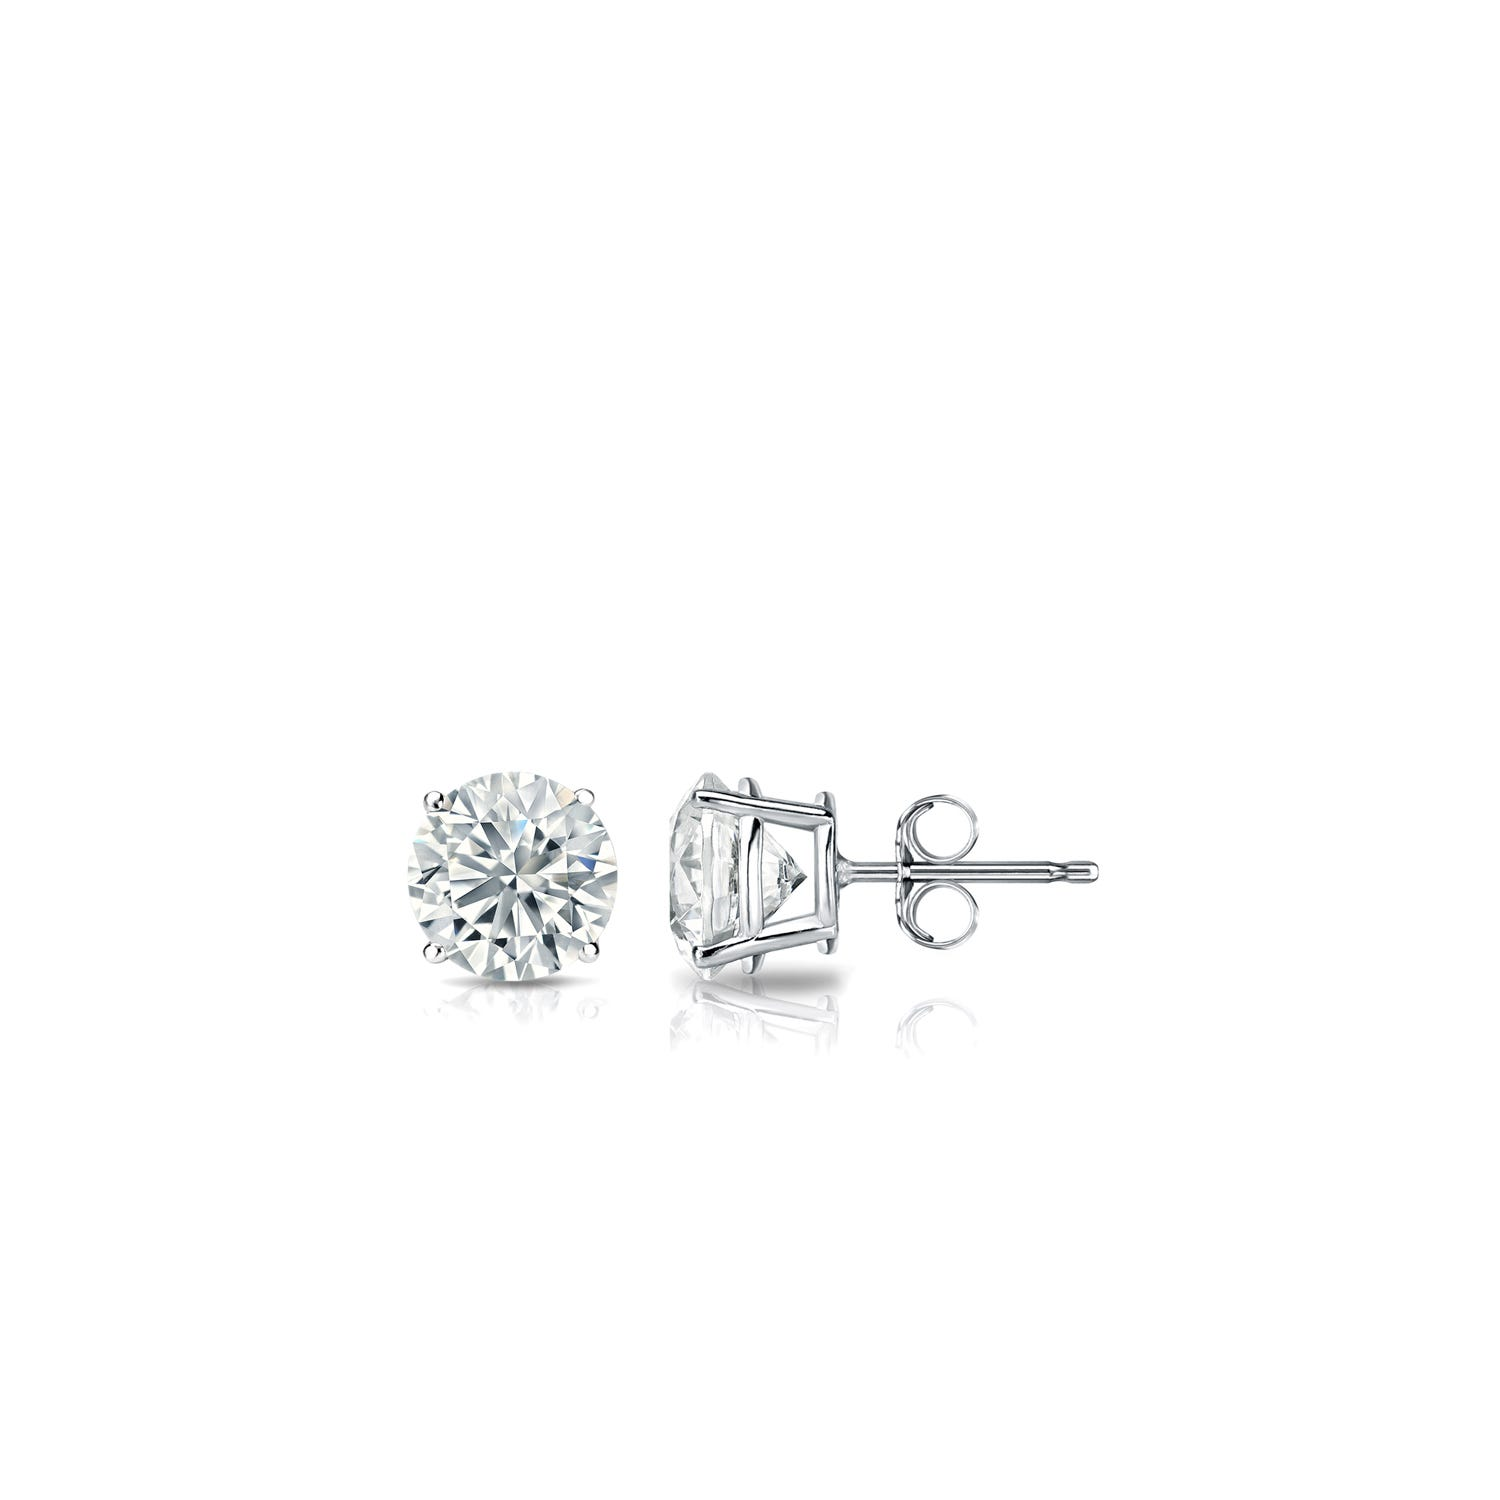 Diamond 1/10ctw. Round Solitaire Stud Earrings (I-J, SI2) 10k White Gold